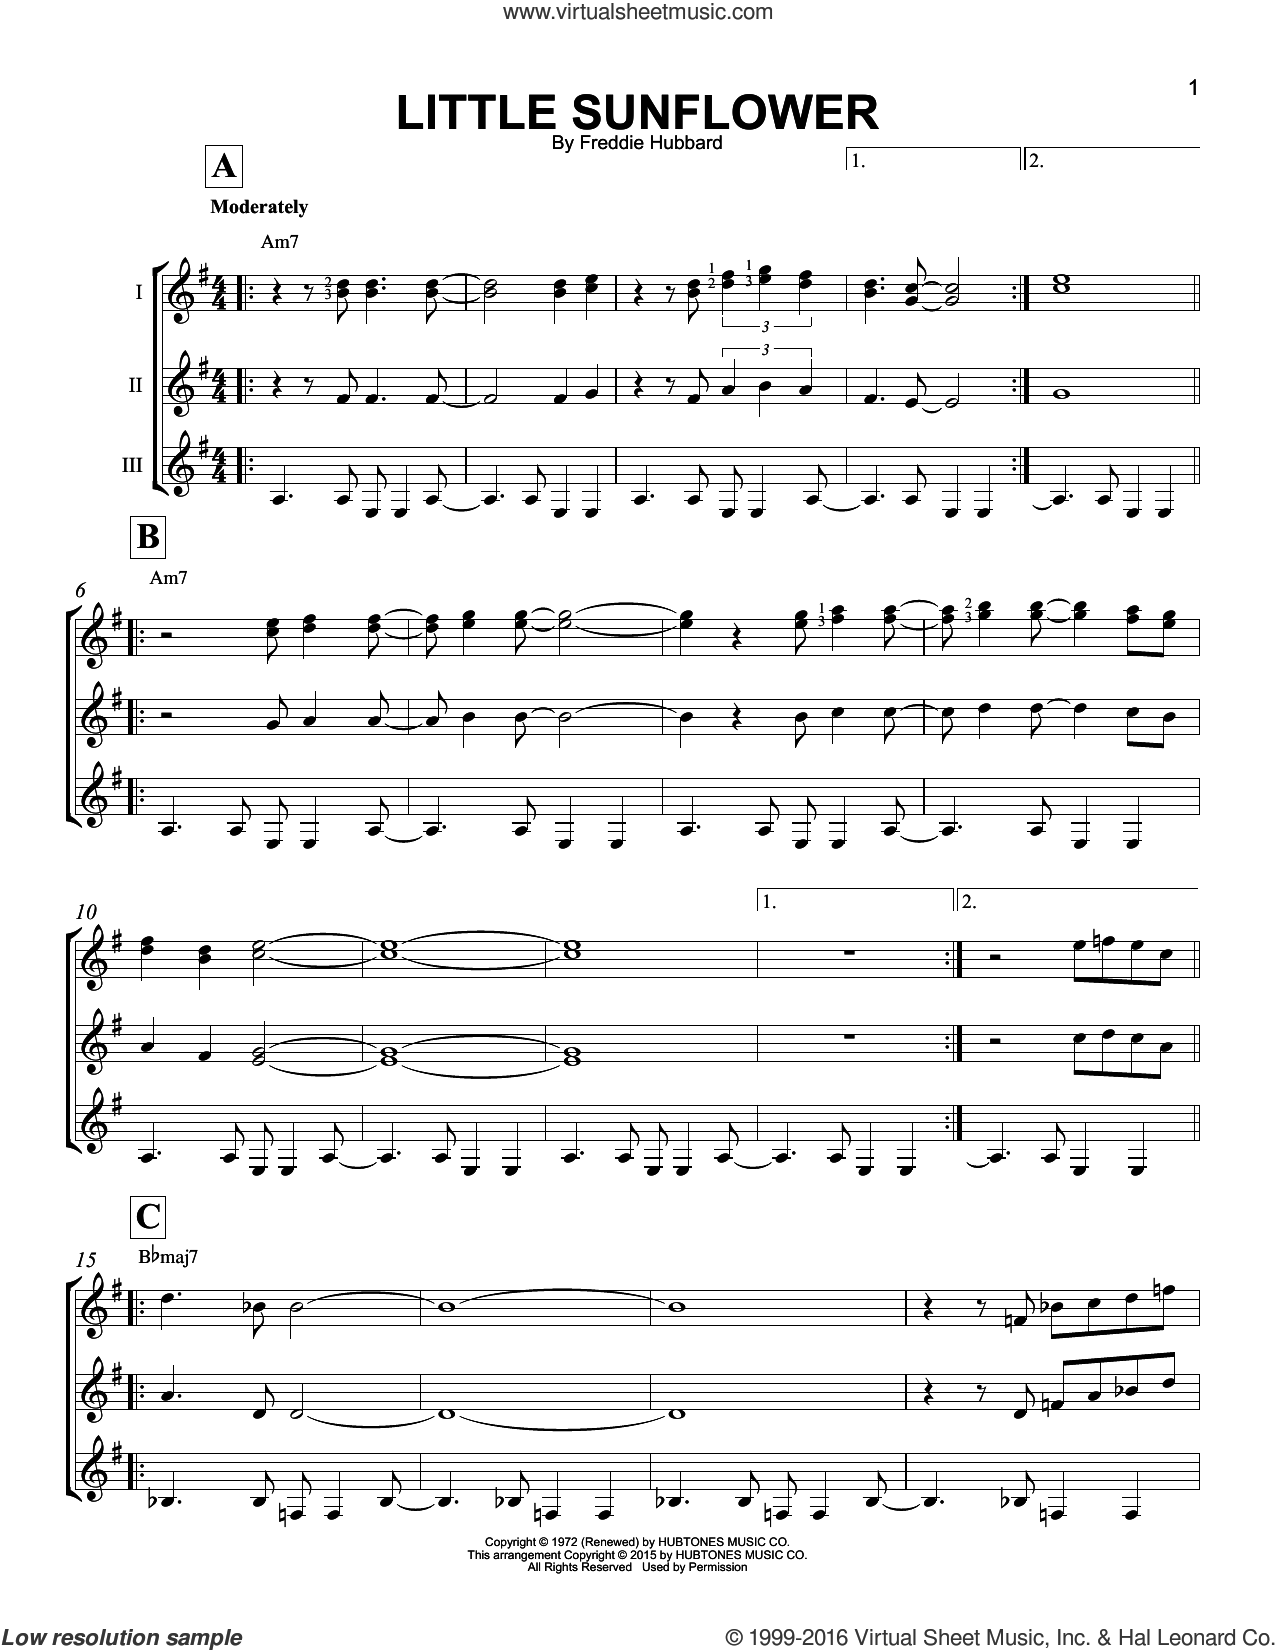 Little Sunflower sheet music for guitar ensemble by Freddie Hubbard, intermediate skill level